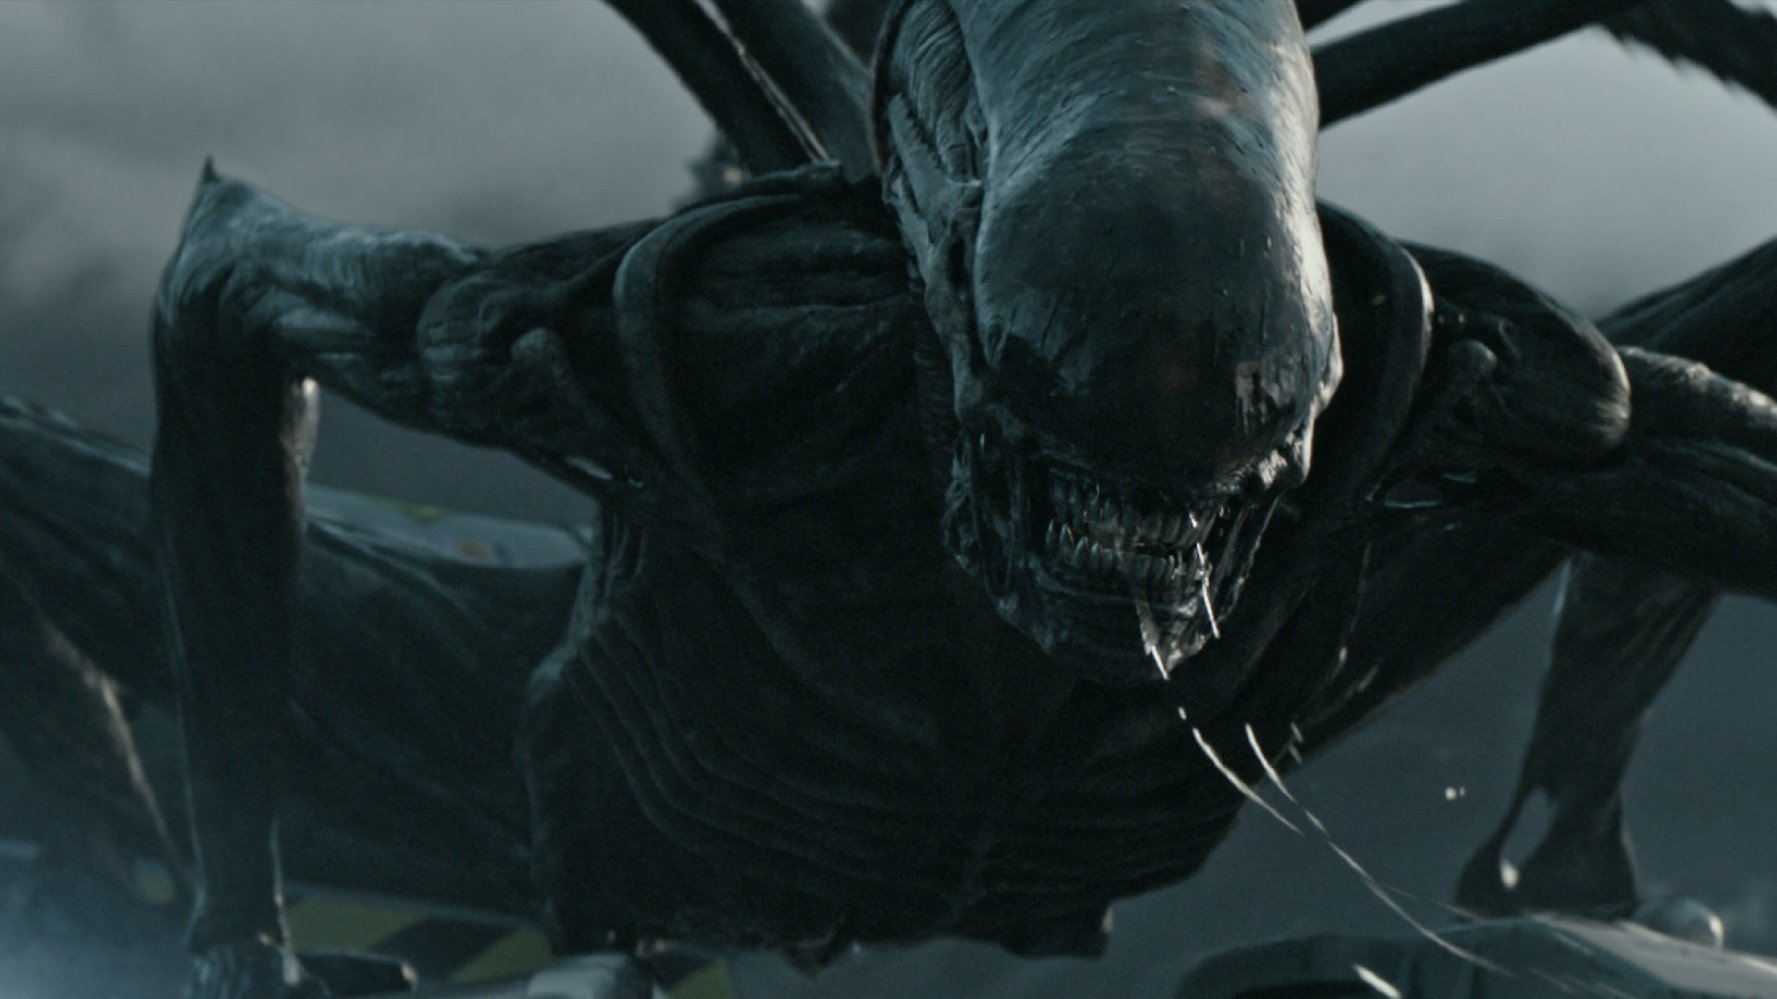 Scary space movie dethrones amusing space movie at USA box offices